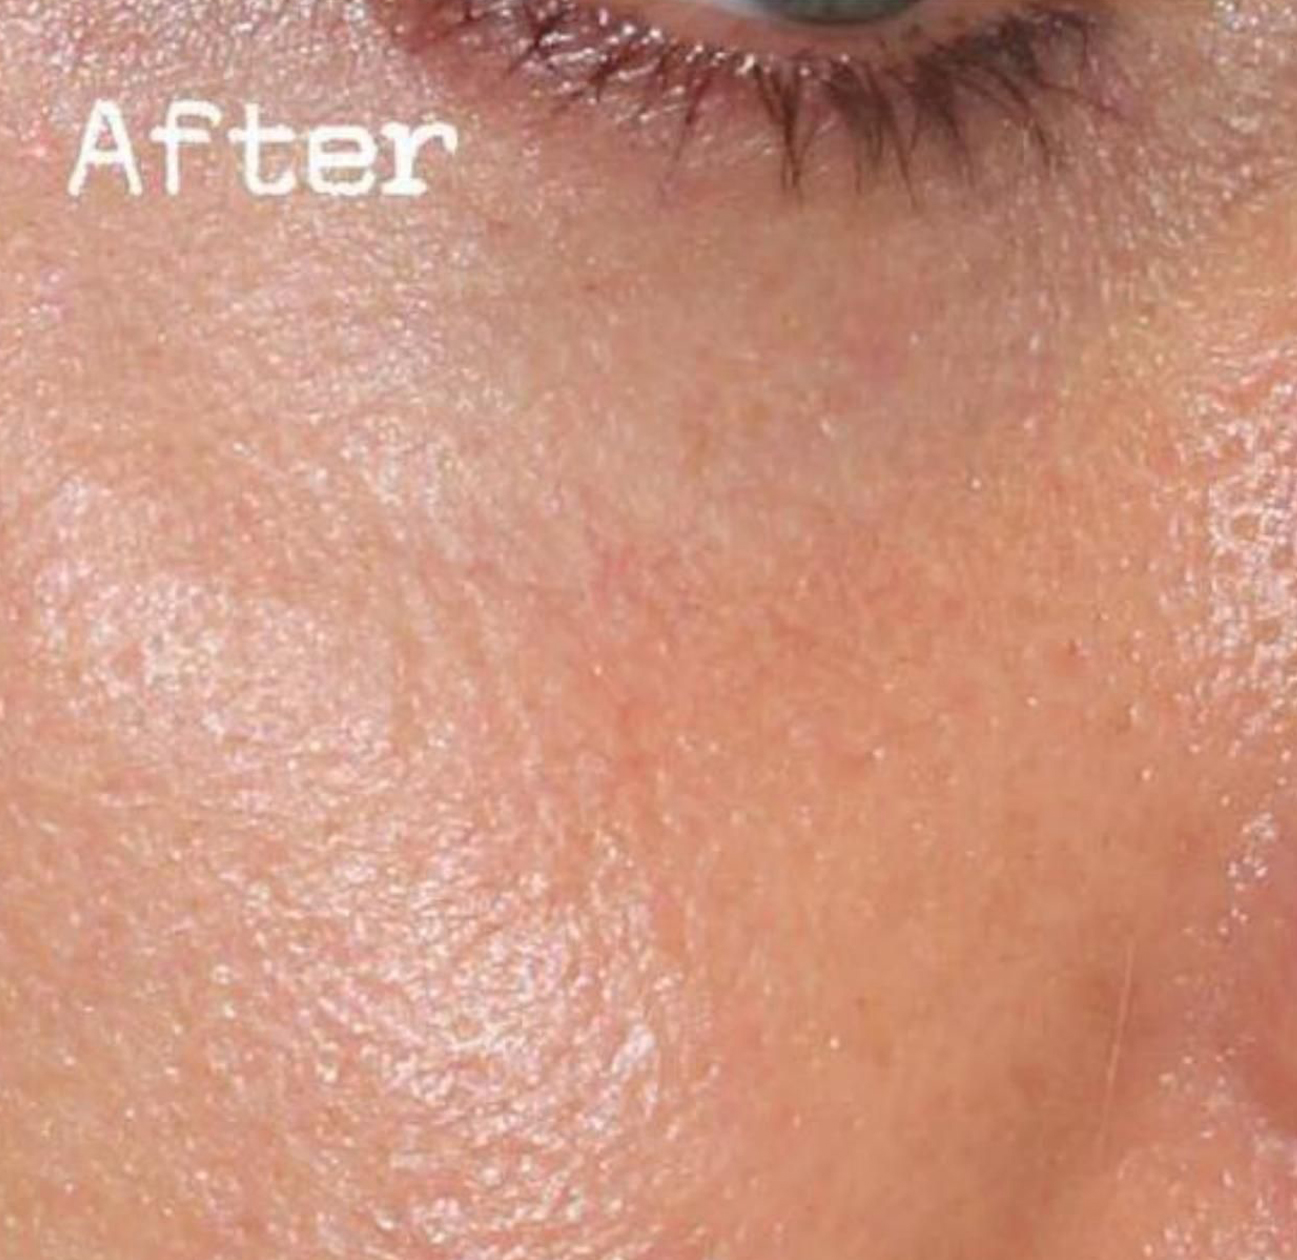 After Nonsurgical Under Eye Hollow